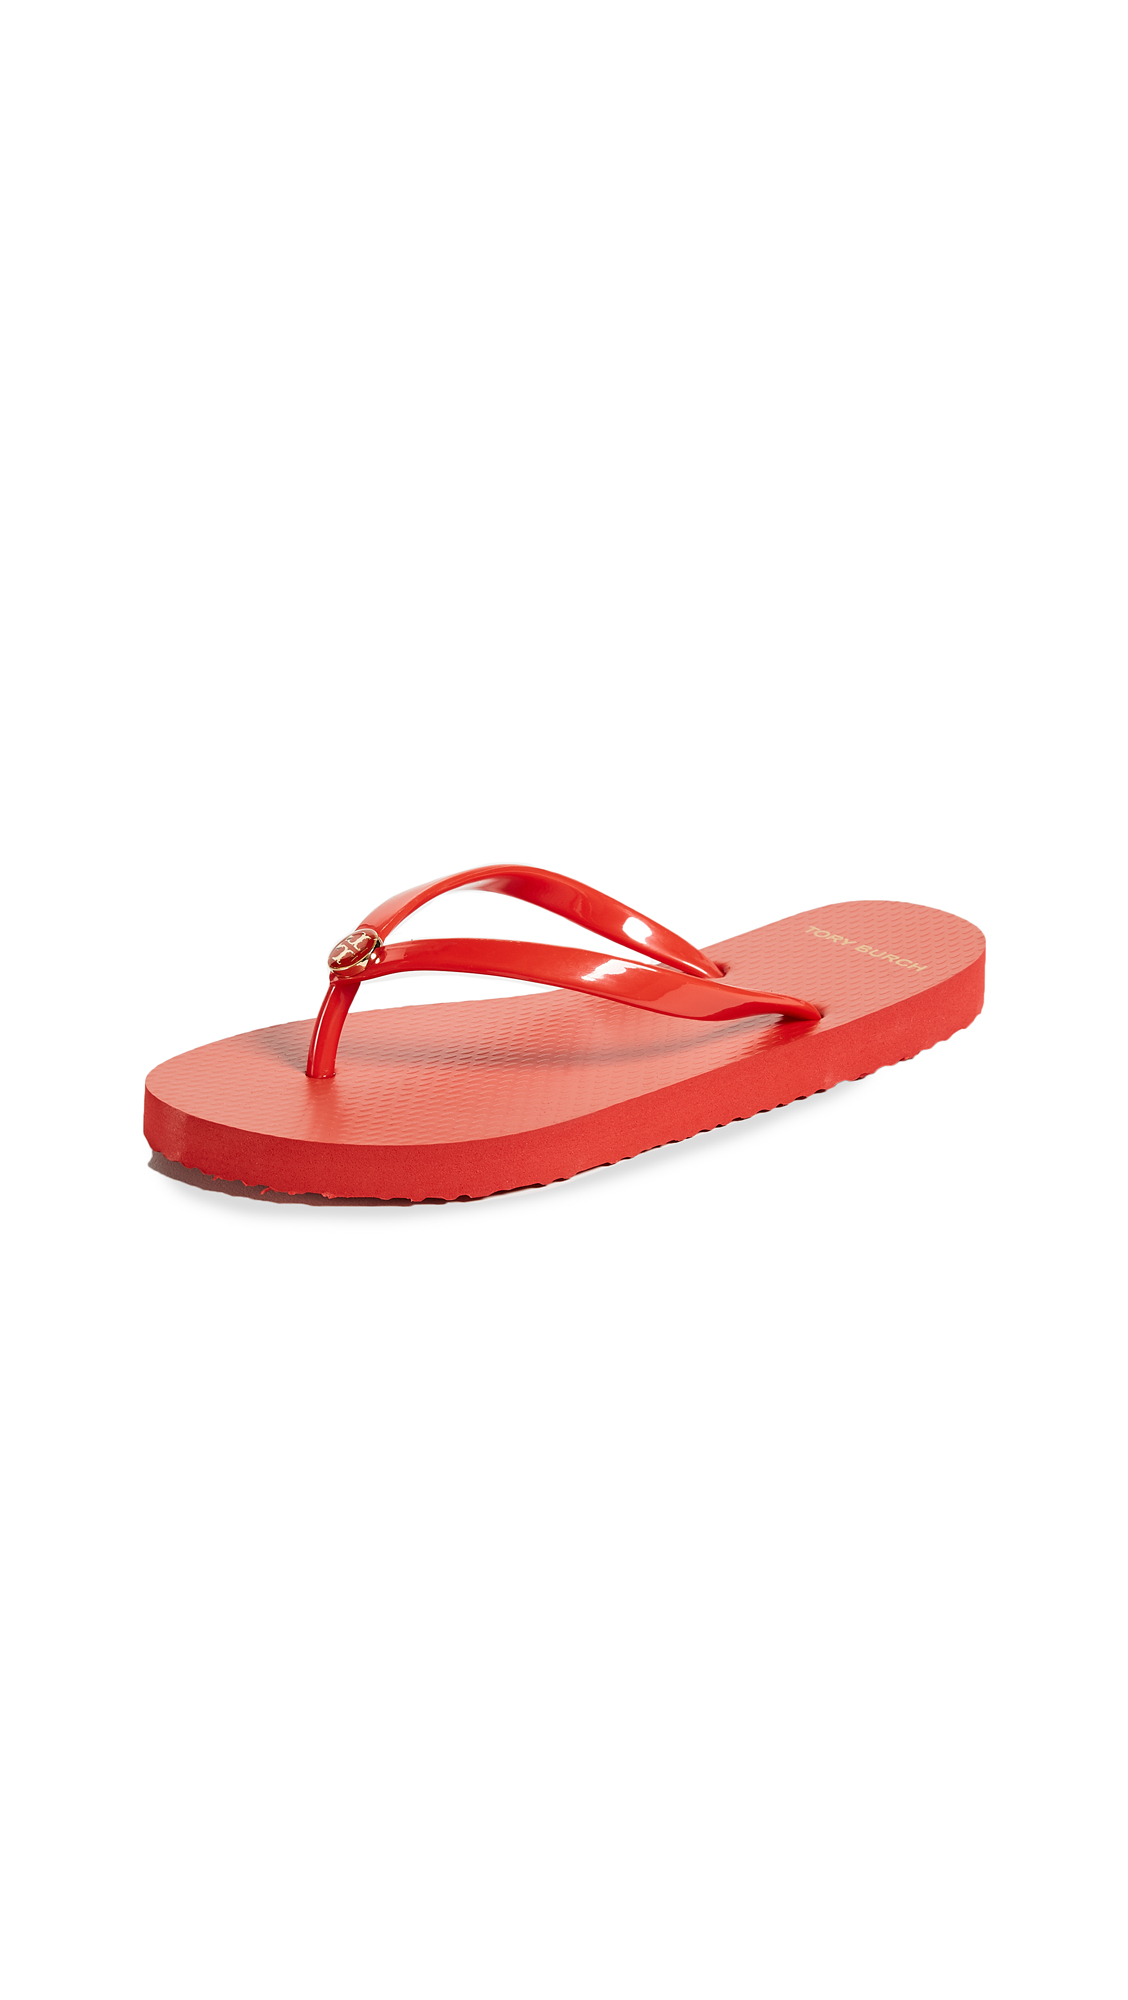 Tory Burch Solid Thin Flip Flops - Poppy Orange